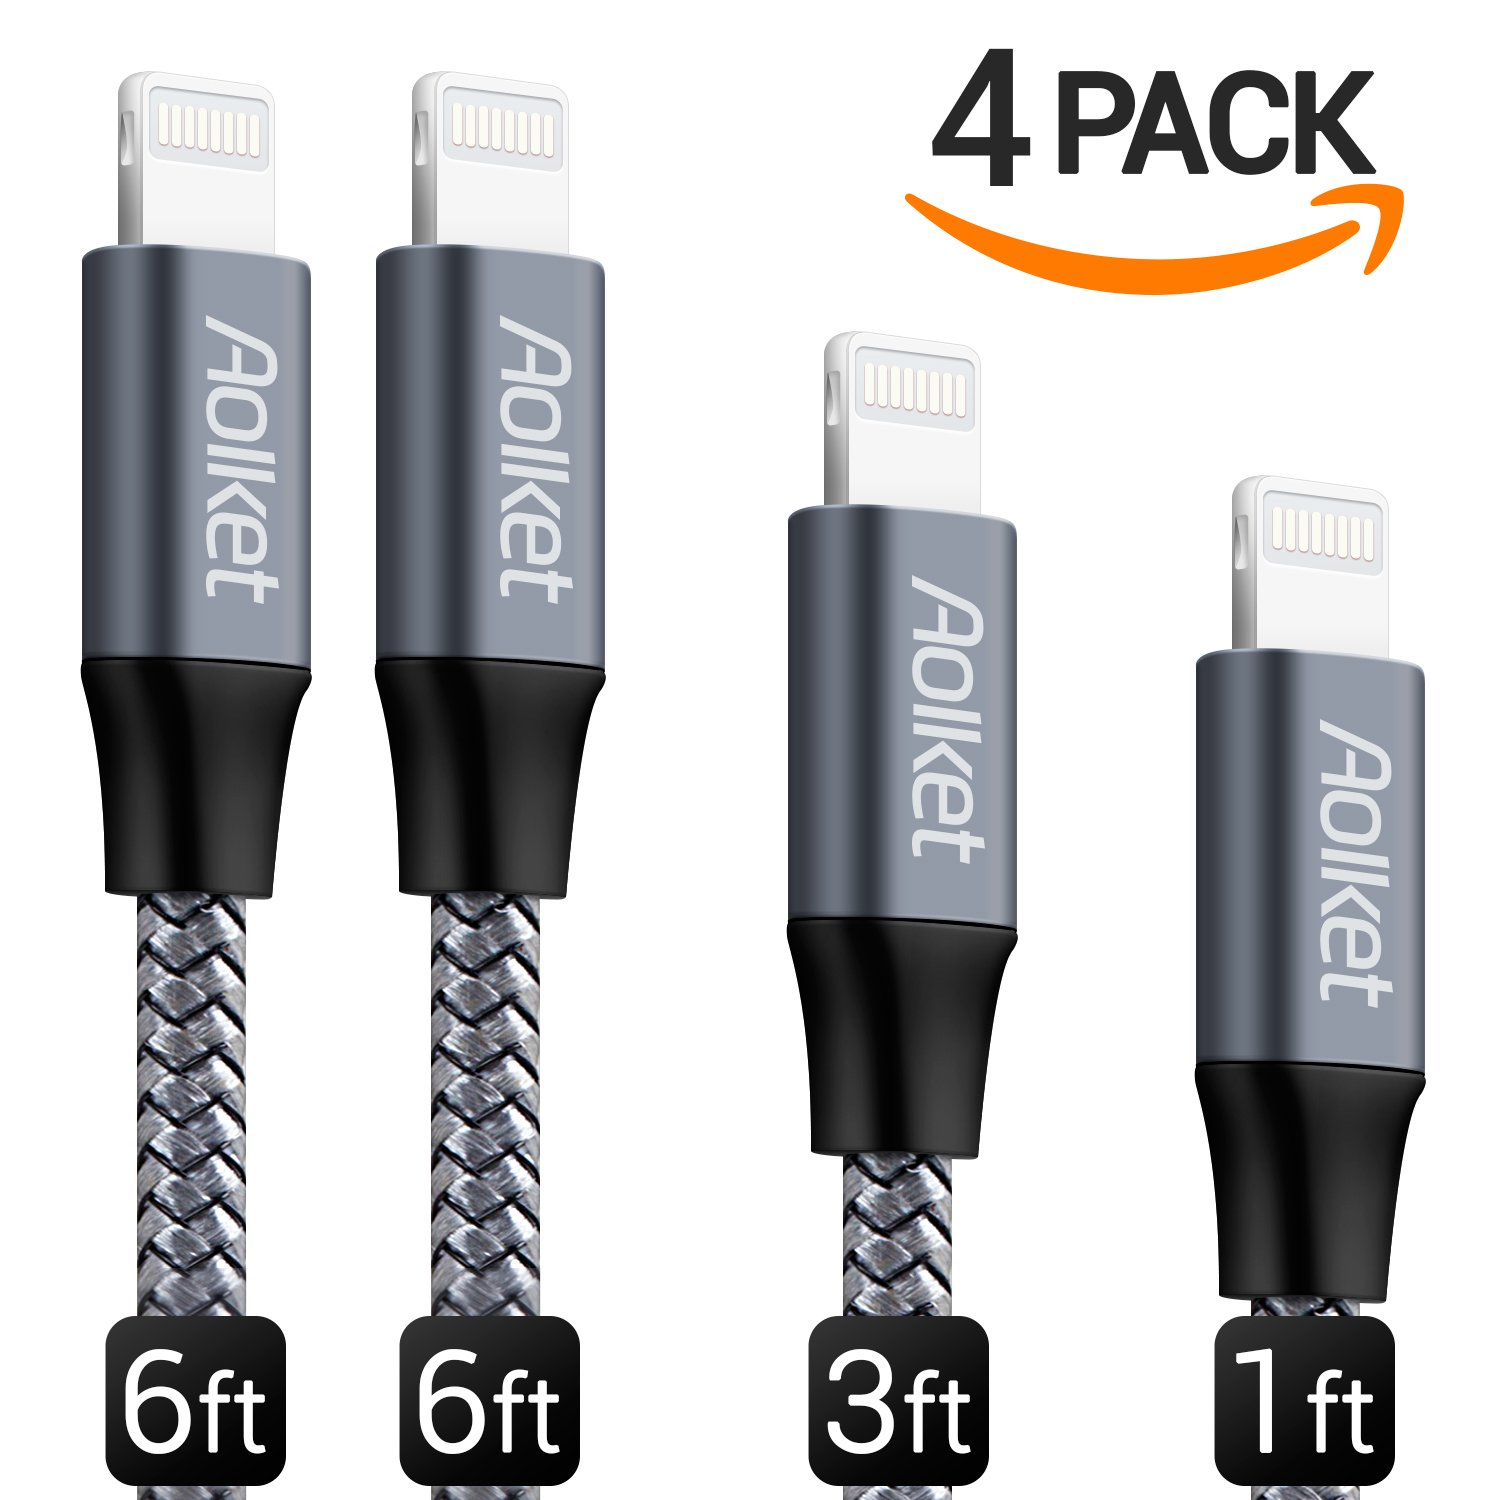 Amazon.com: Lightning Cable, Aolket iPhone Charger 4Pack Lightning ...